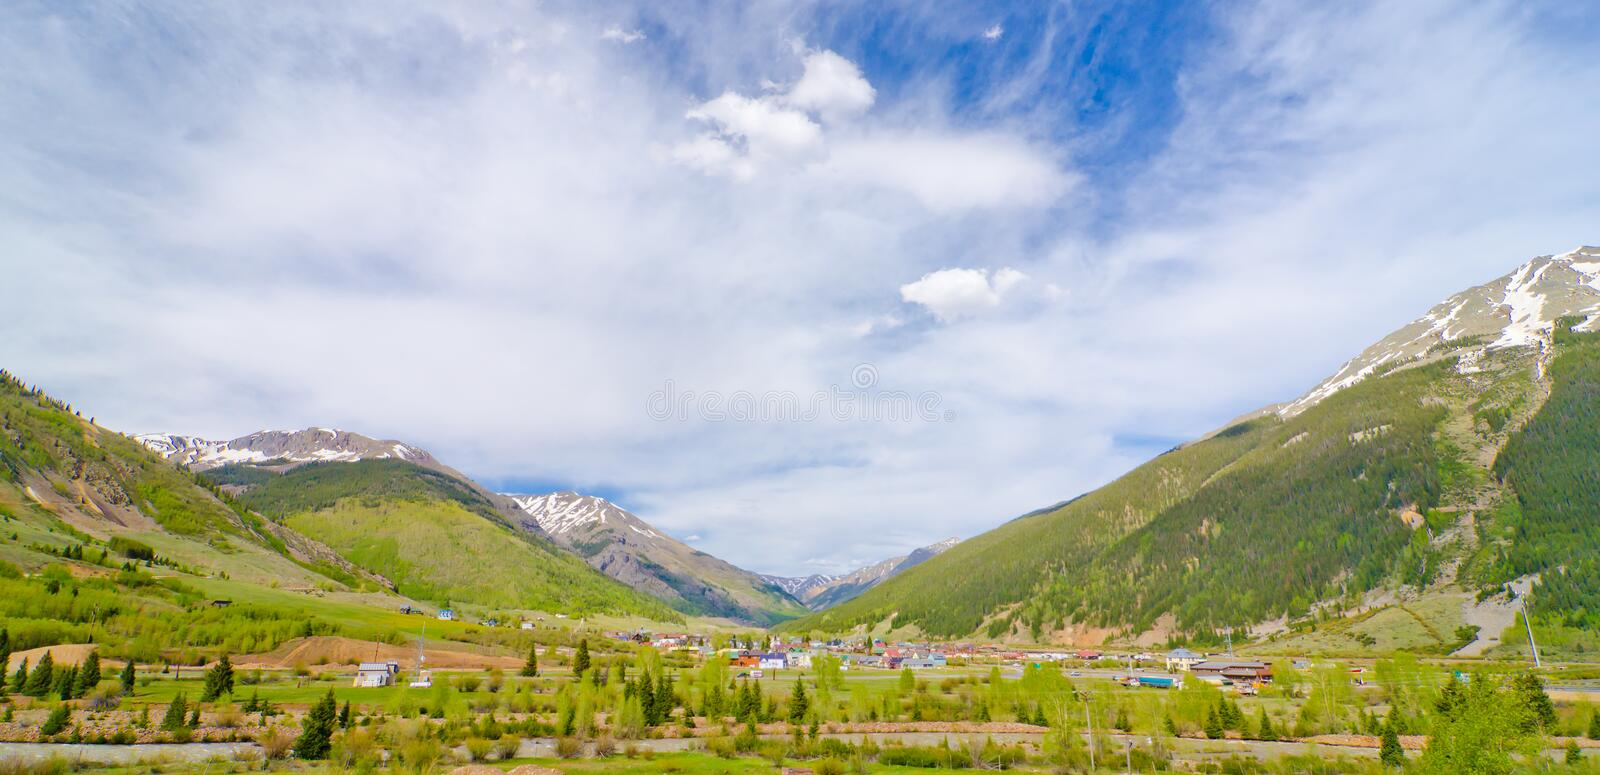 The City of Silverton nestled in the San Juan Mountains in Colorado stock photo